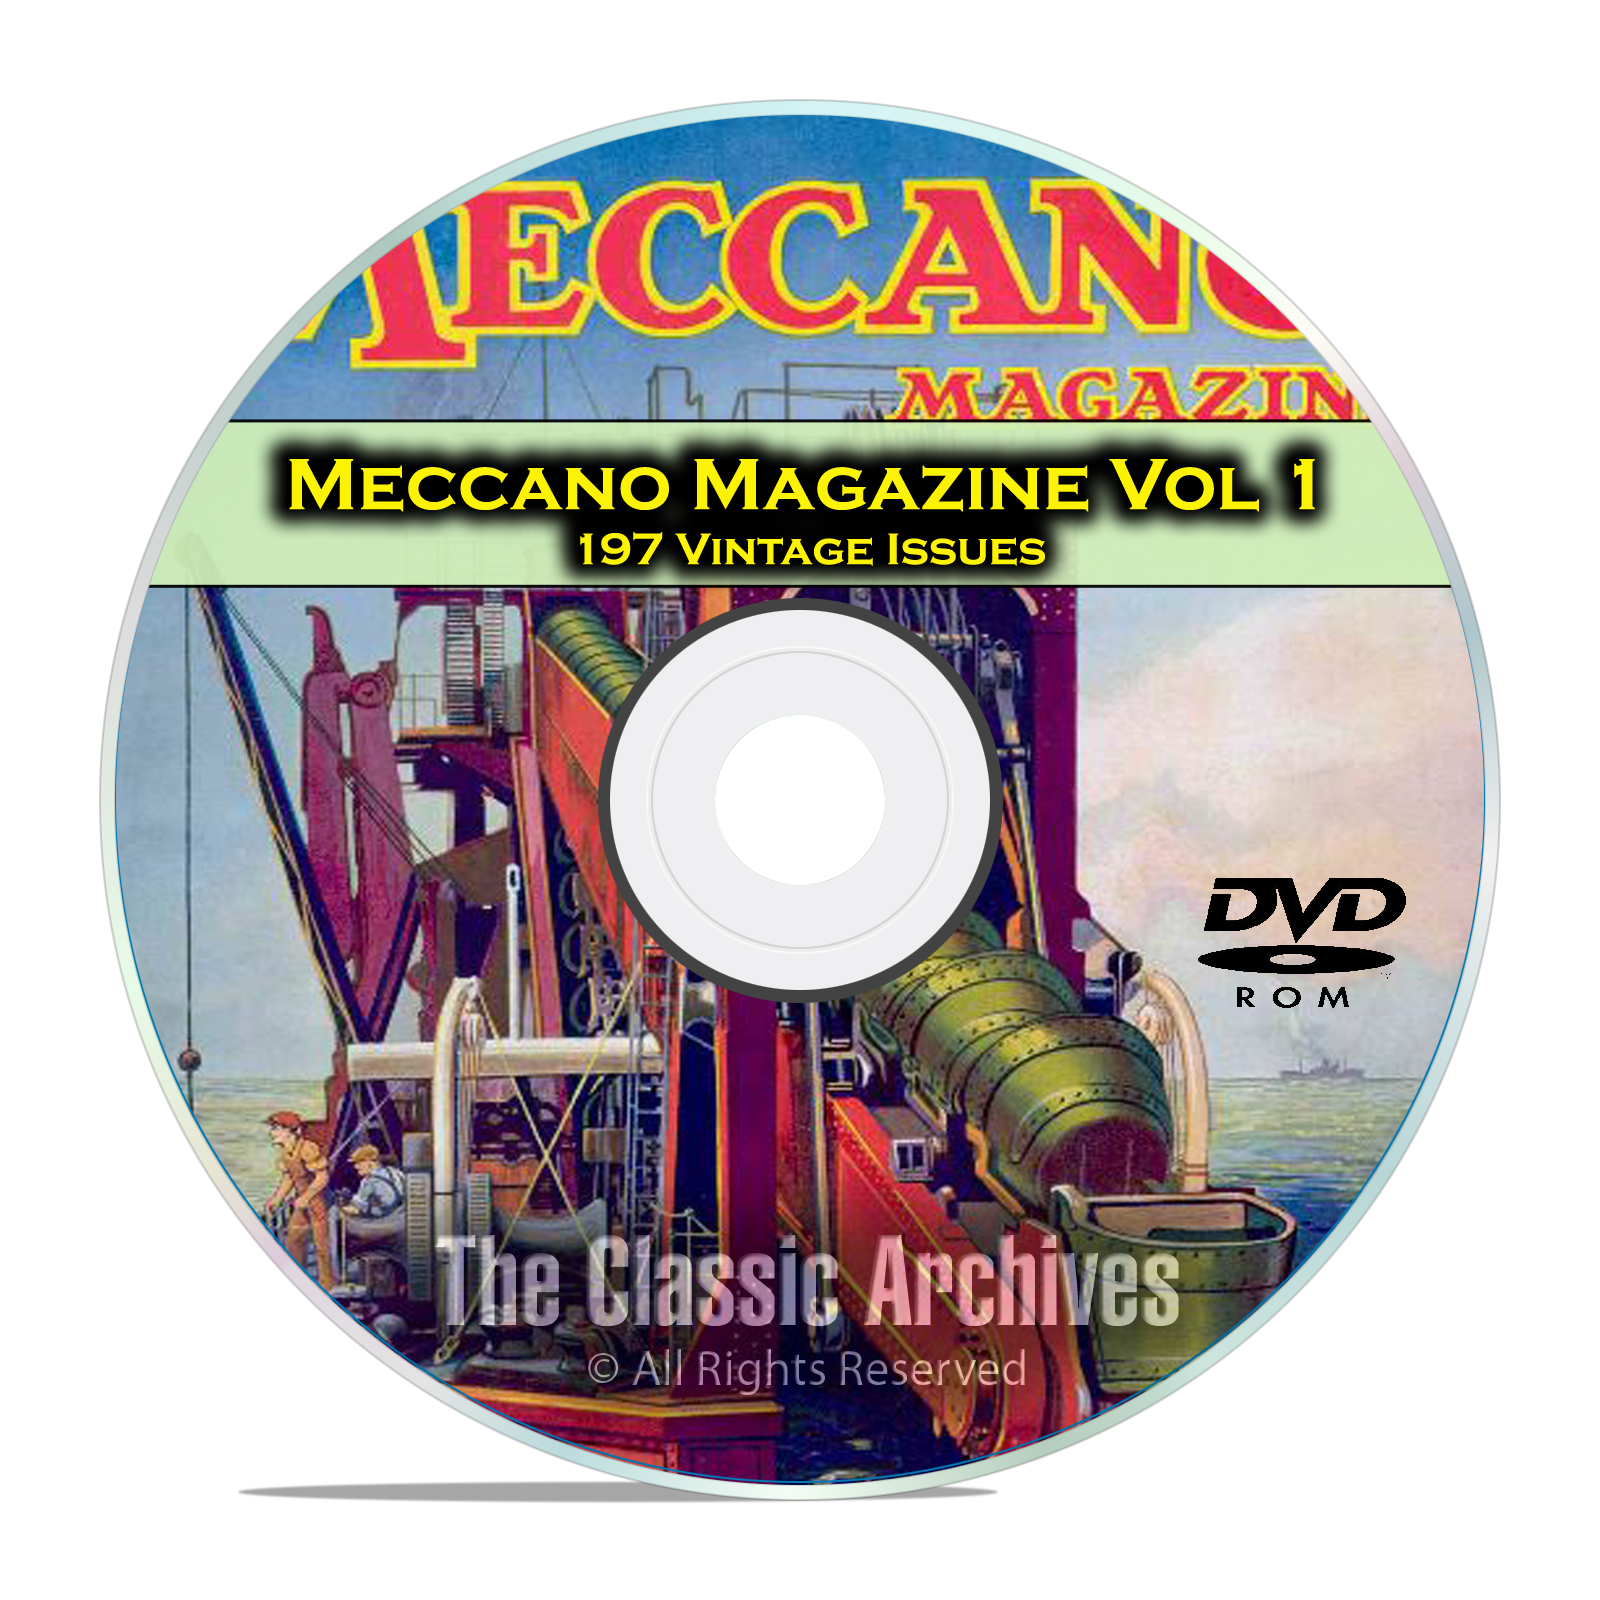 Meccano Magazine Volume 1, 197 Vintage Issues, Boy Hobby Magazine DVD